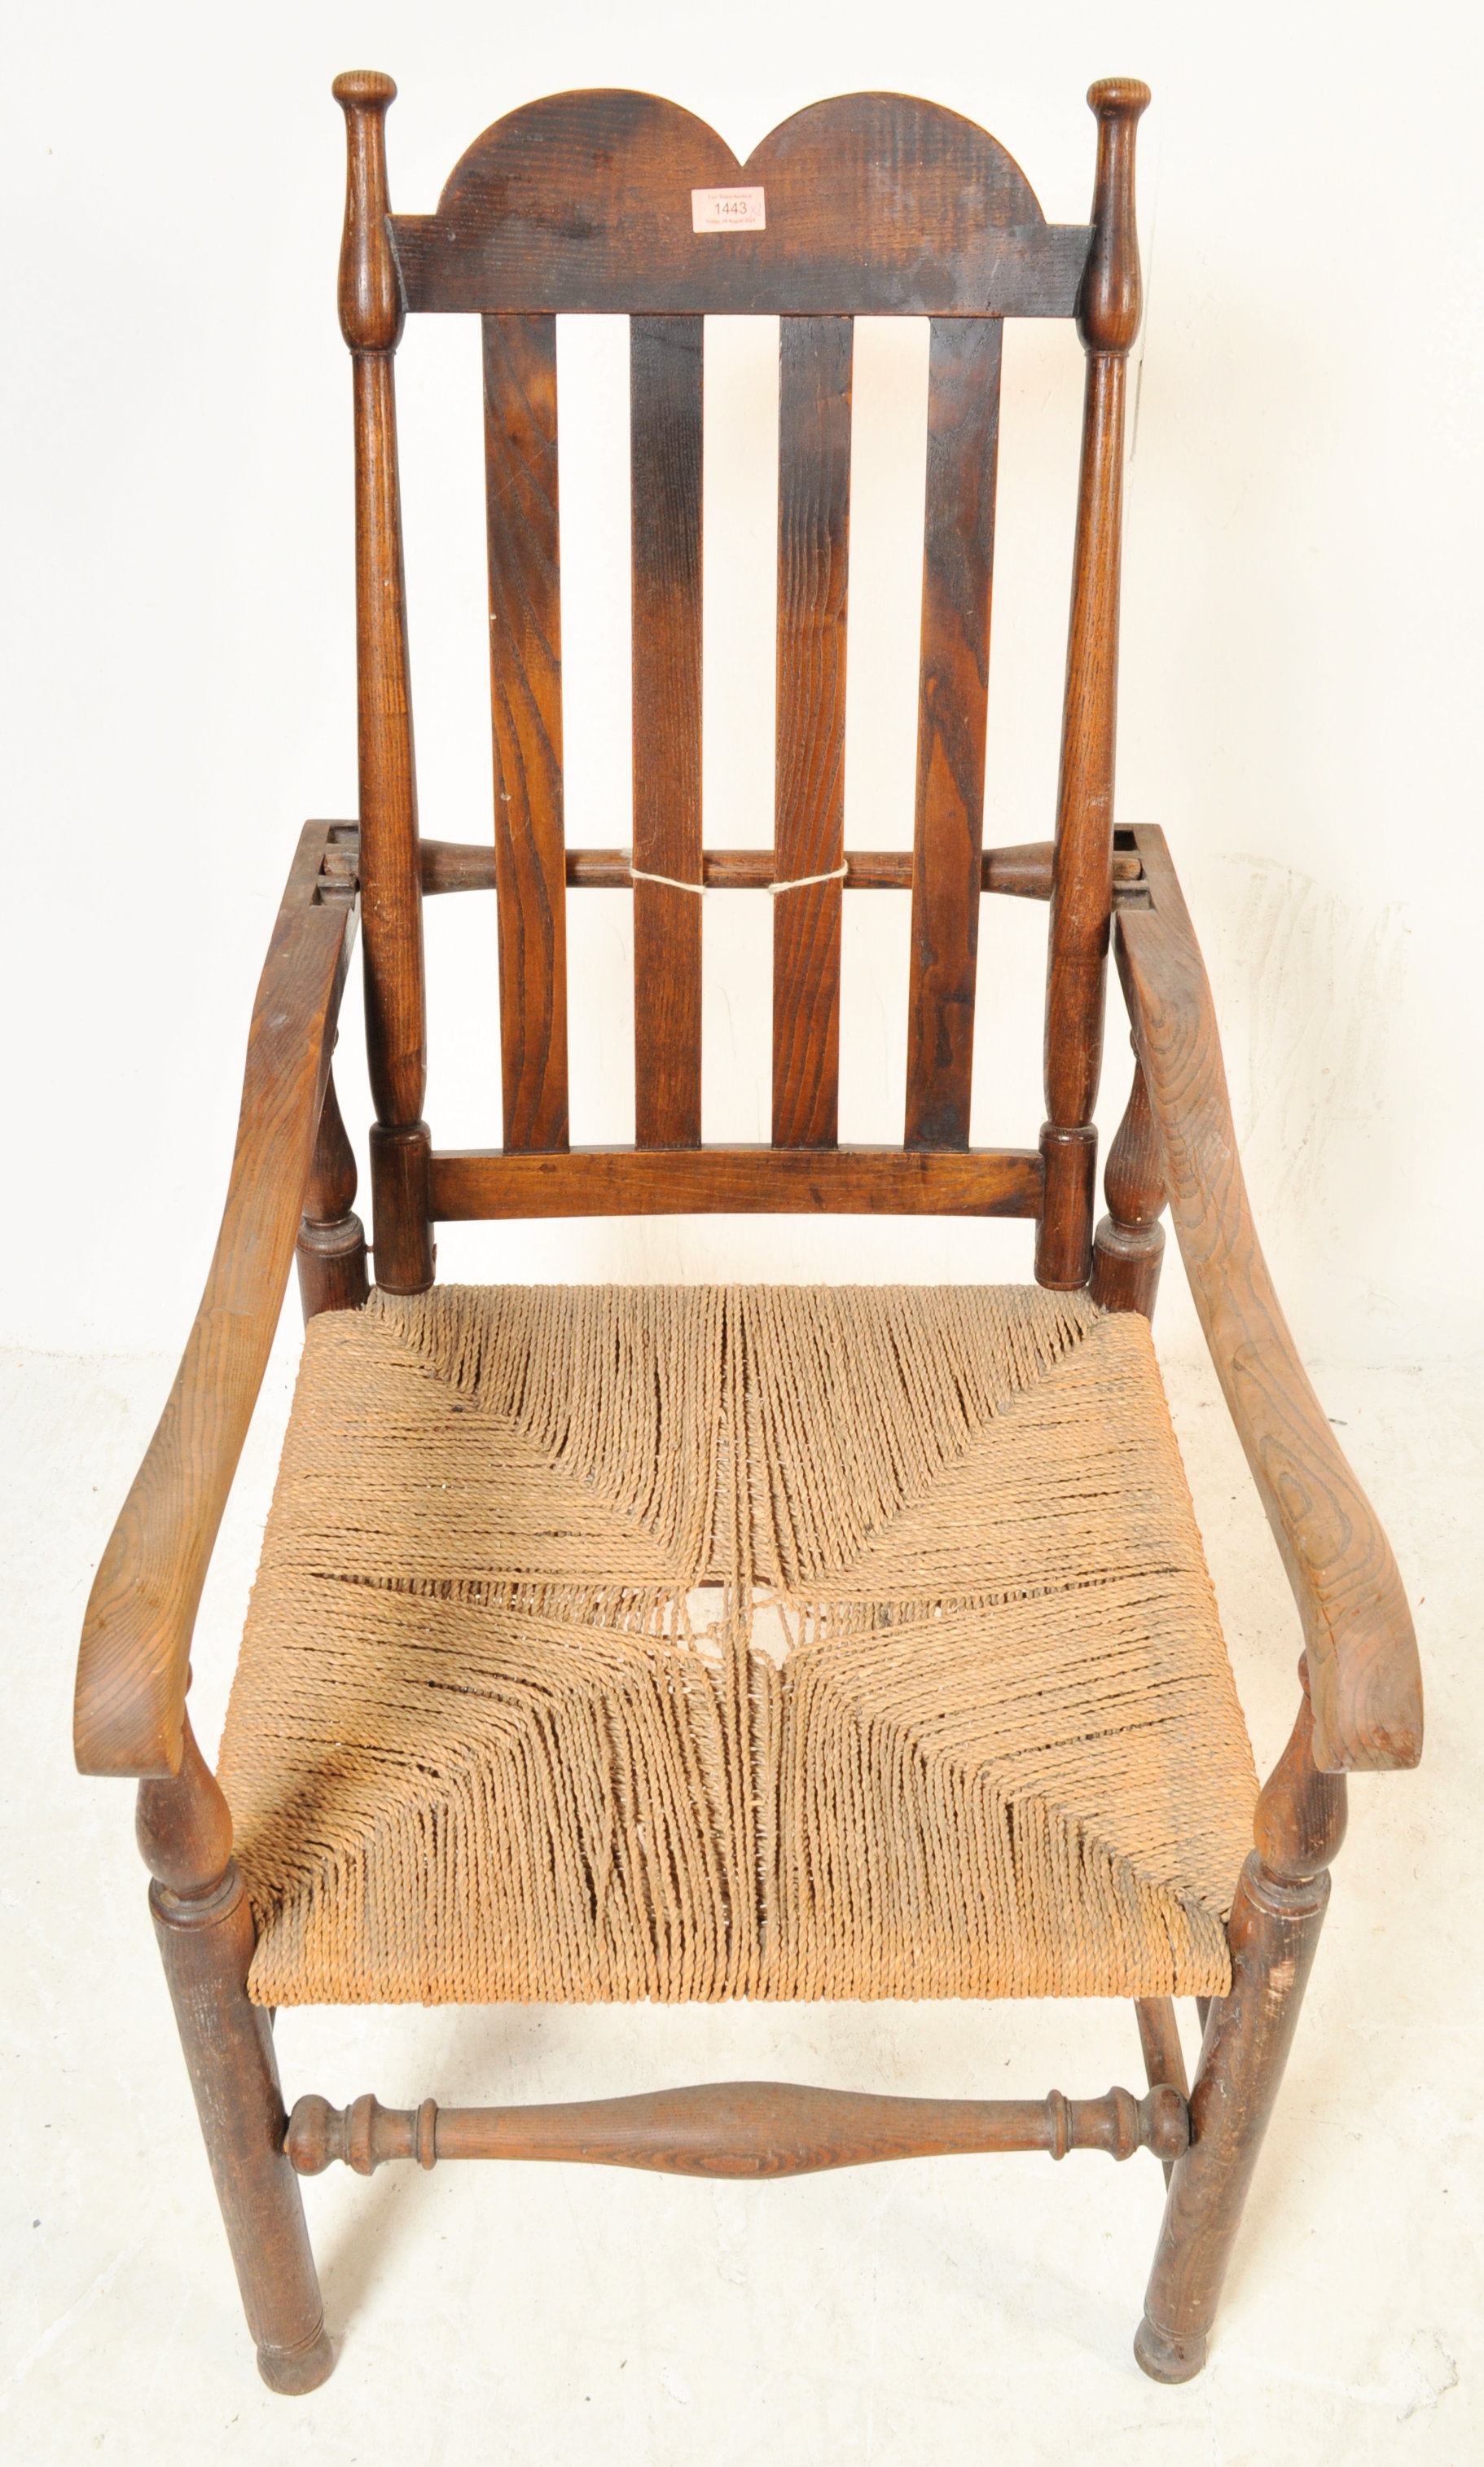 GEORGE II 18TH CENTURY RECLINING NORTH COUNTRY CHAIR WITH ANOTHER - Image 3 of 7